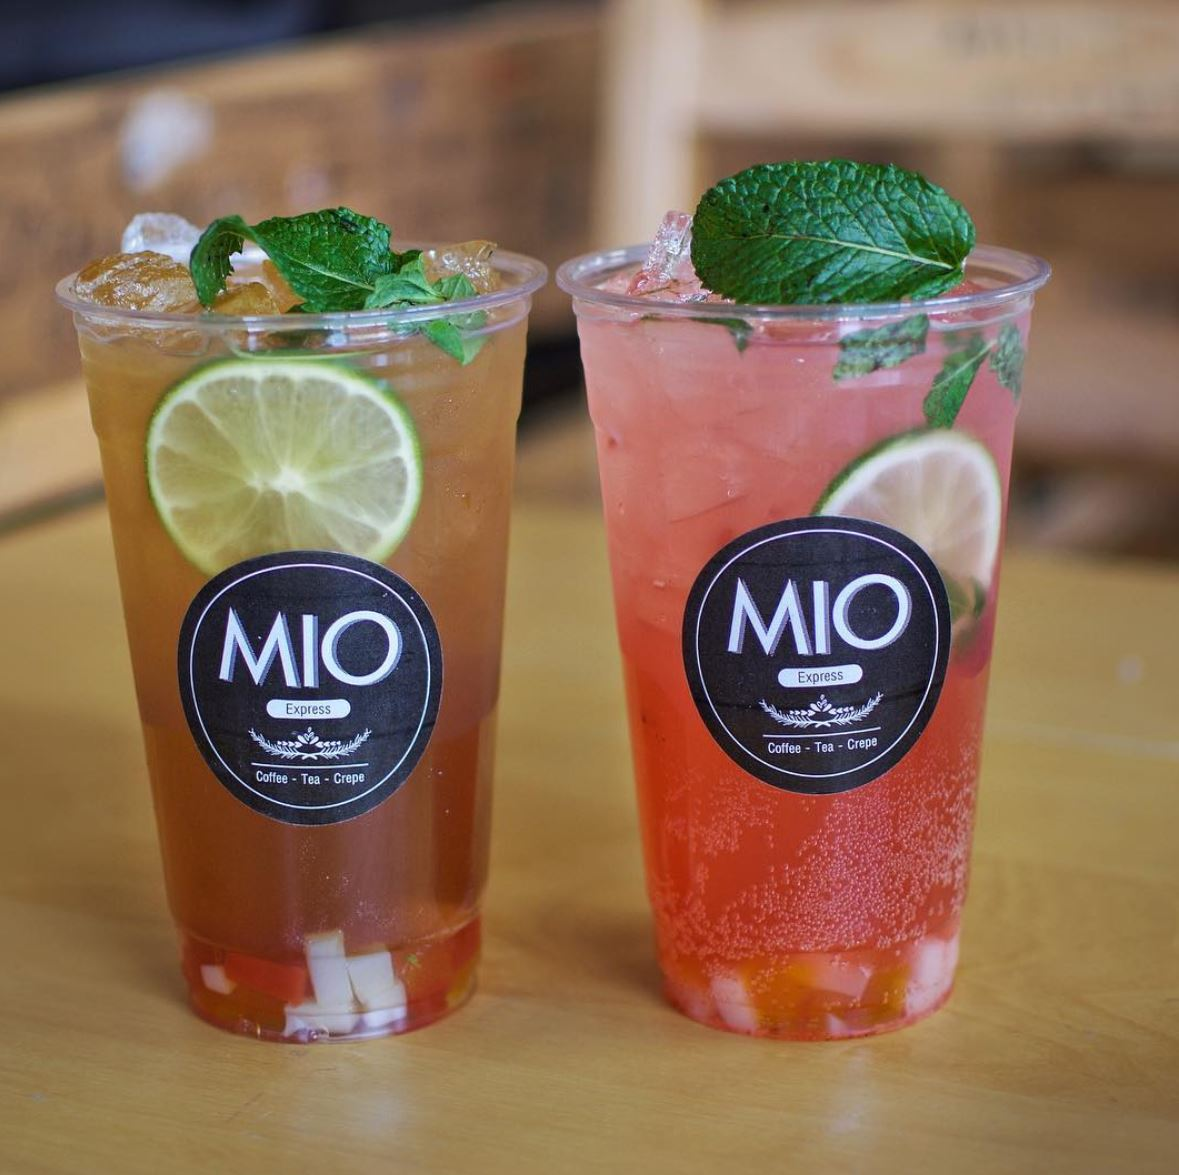 Oct. 28 - 29 | BOGO Free All Drinks @ Mio Tea House - Garden Grove